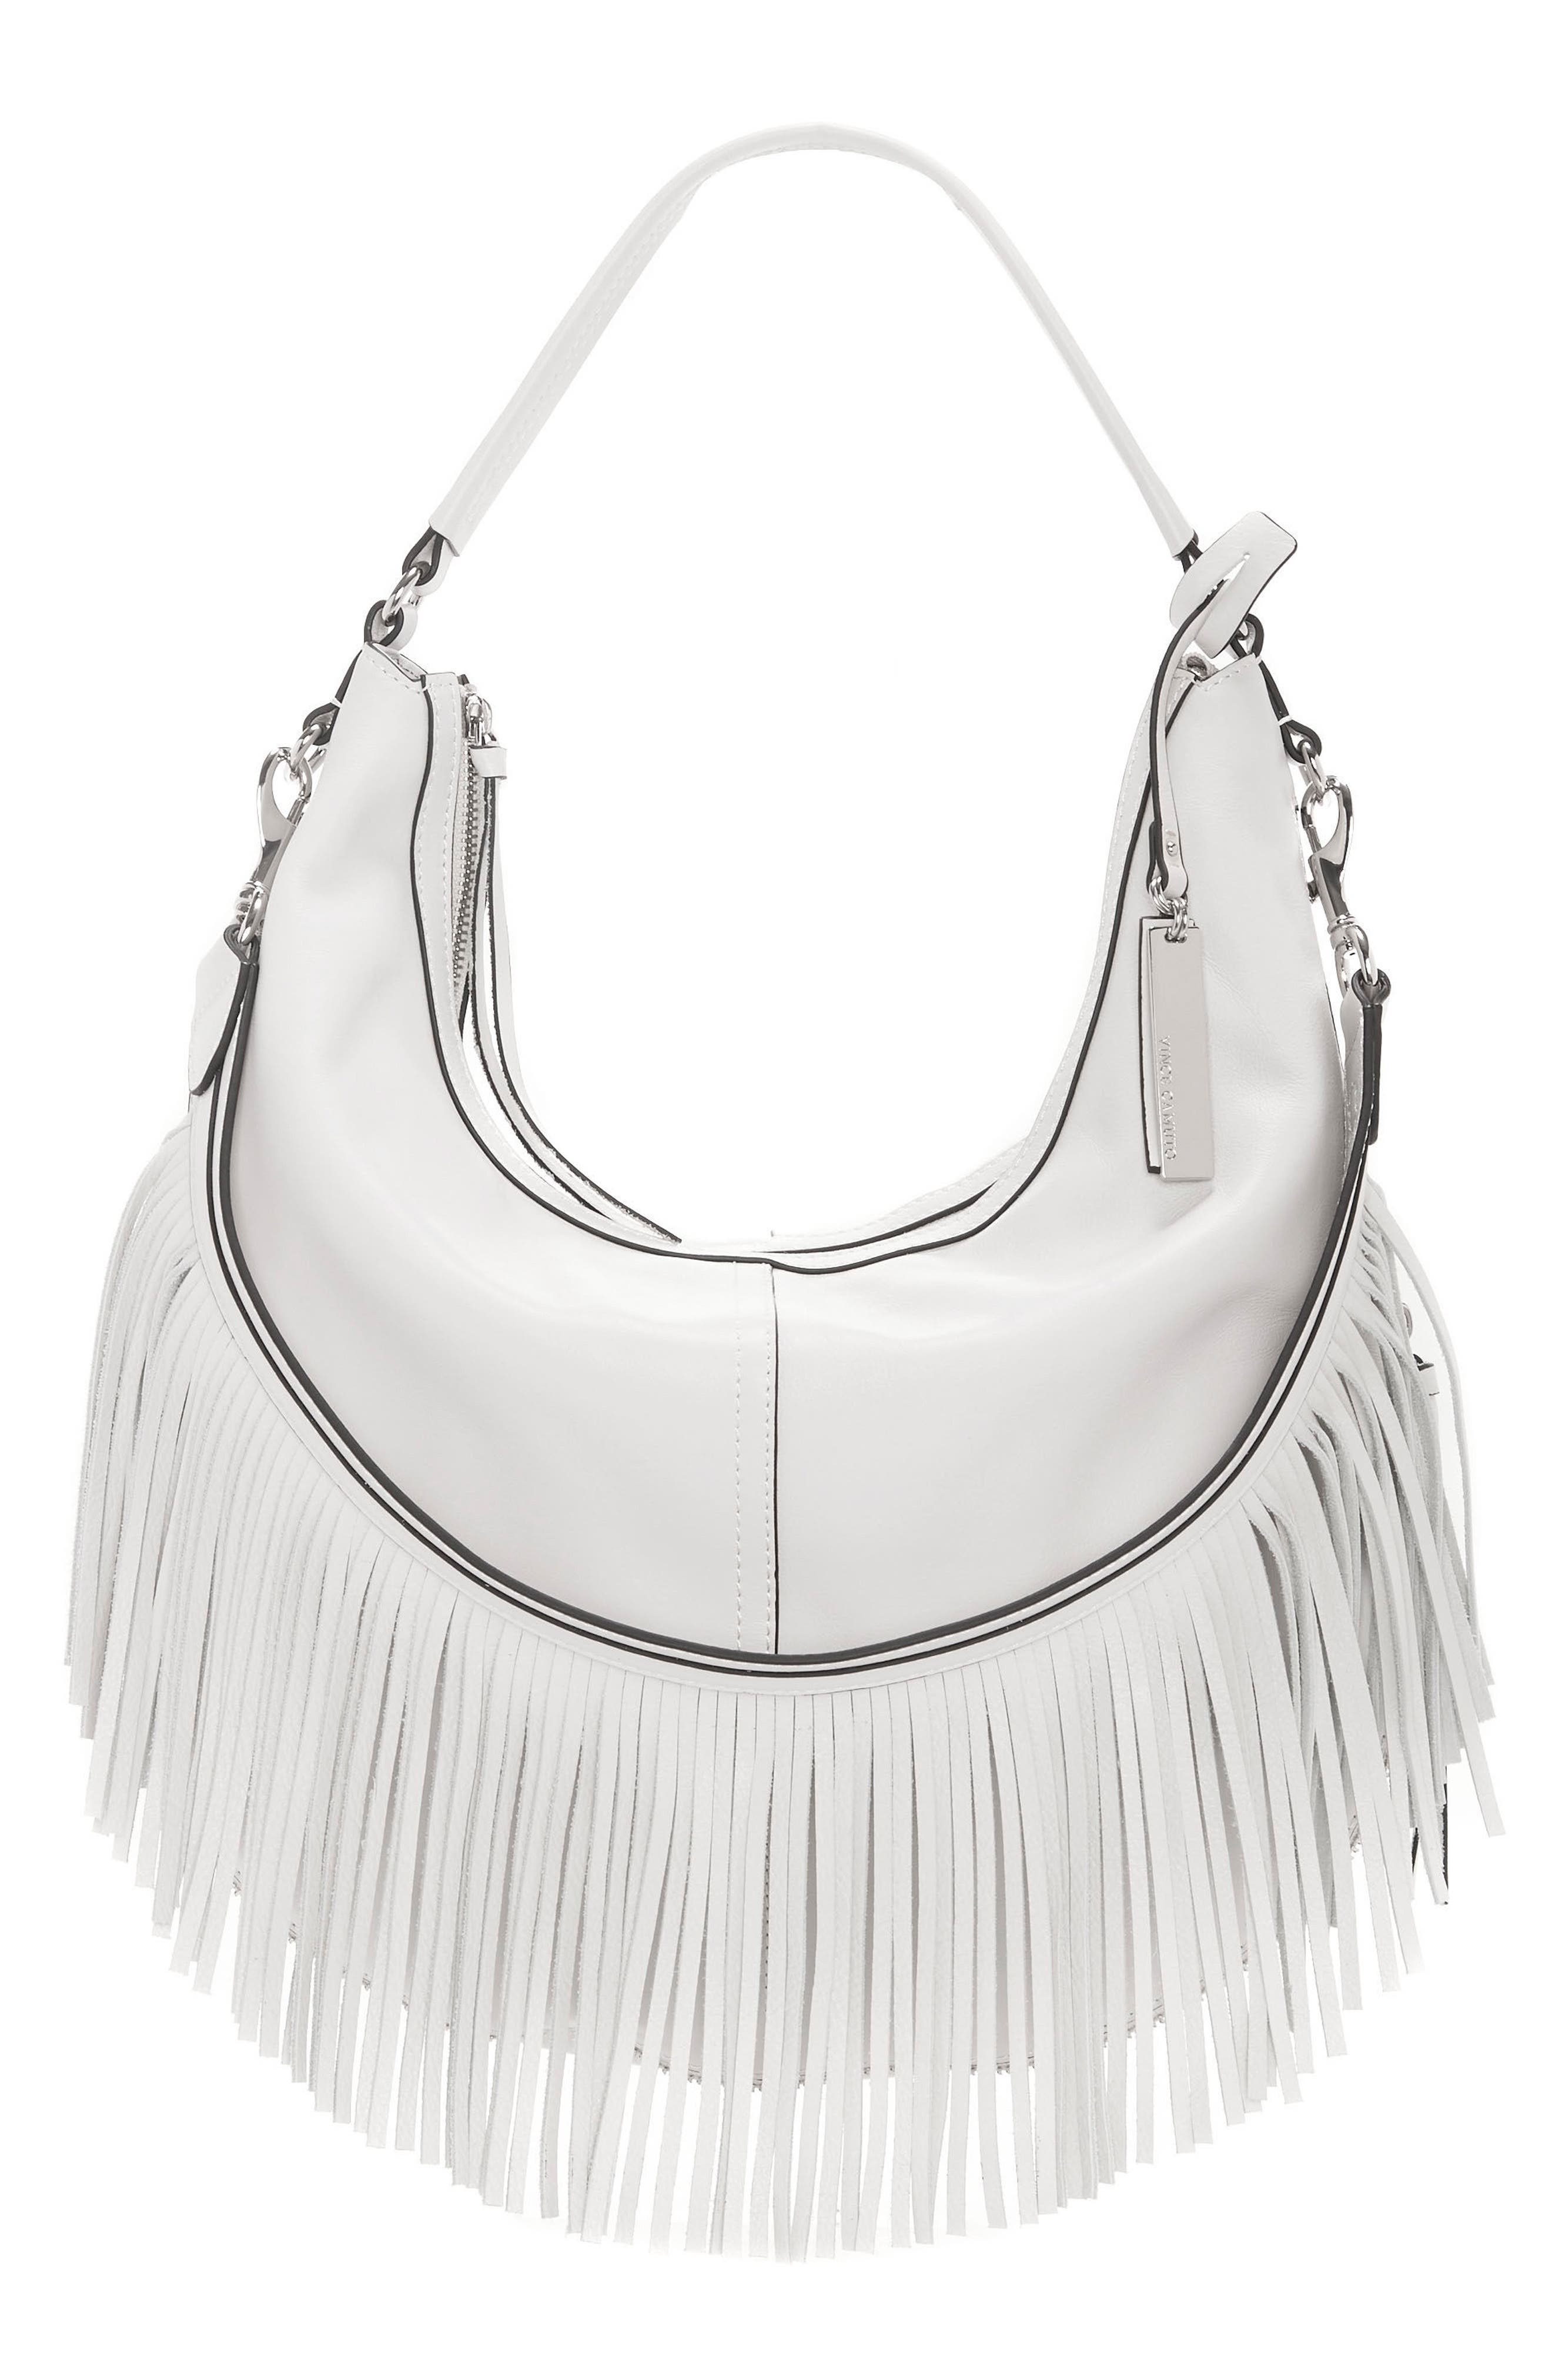 Alternate Image 1 Selected - Vince Camuto Hil Leather Hobo Bag